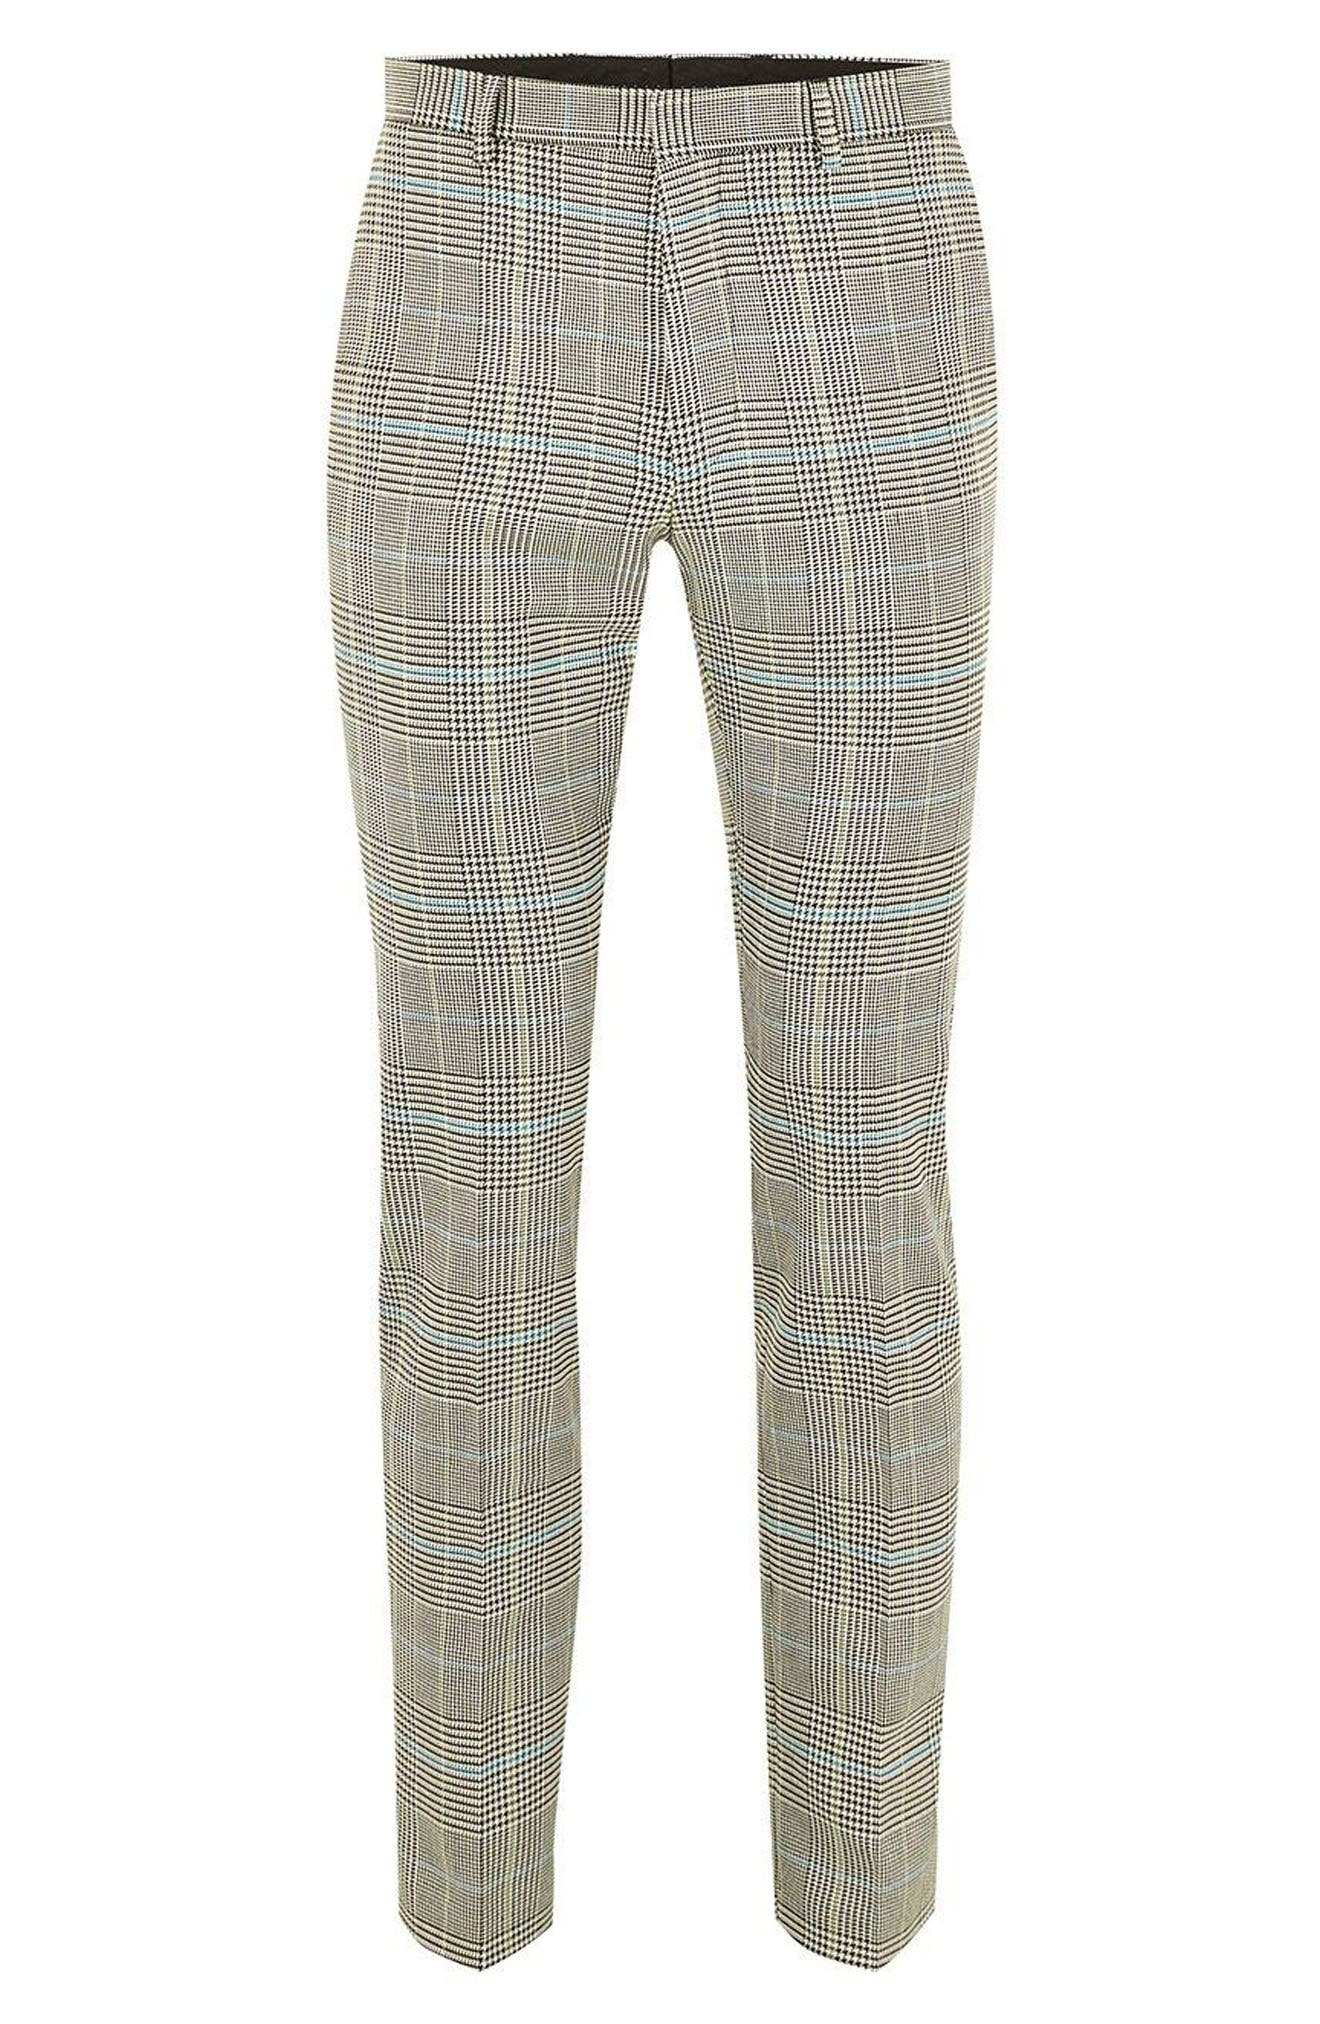 Skinny Fit Houndstooth Suit Trousers,                             Alternate thumbnail 4, color,                             GREY MULTI